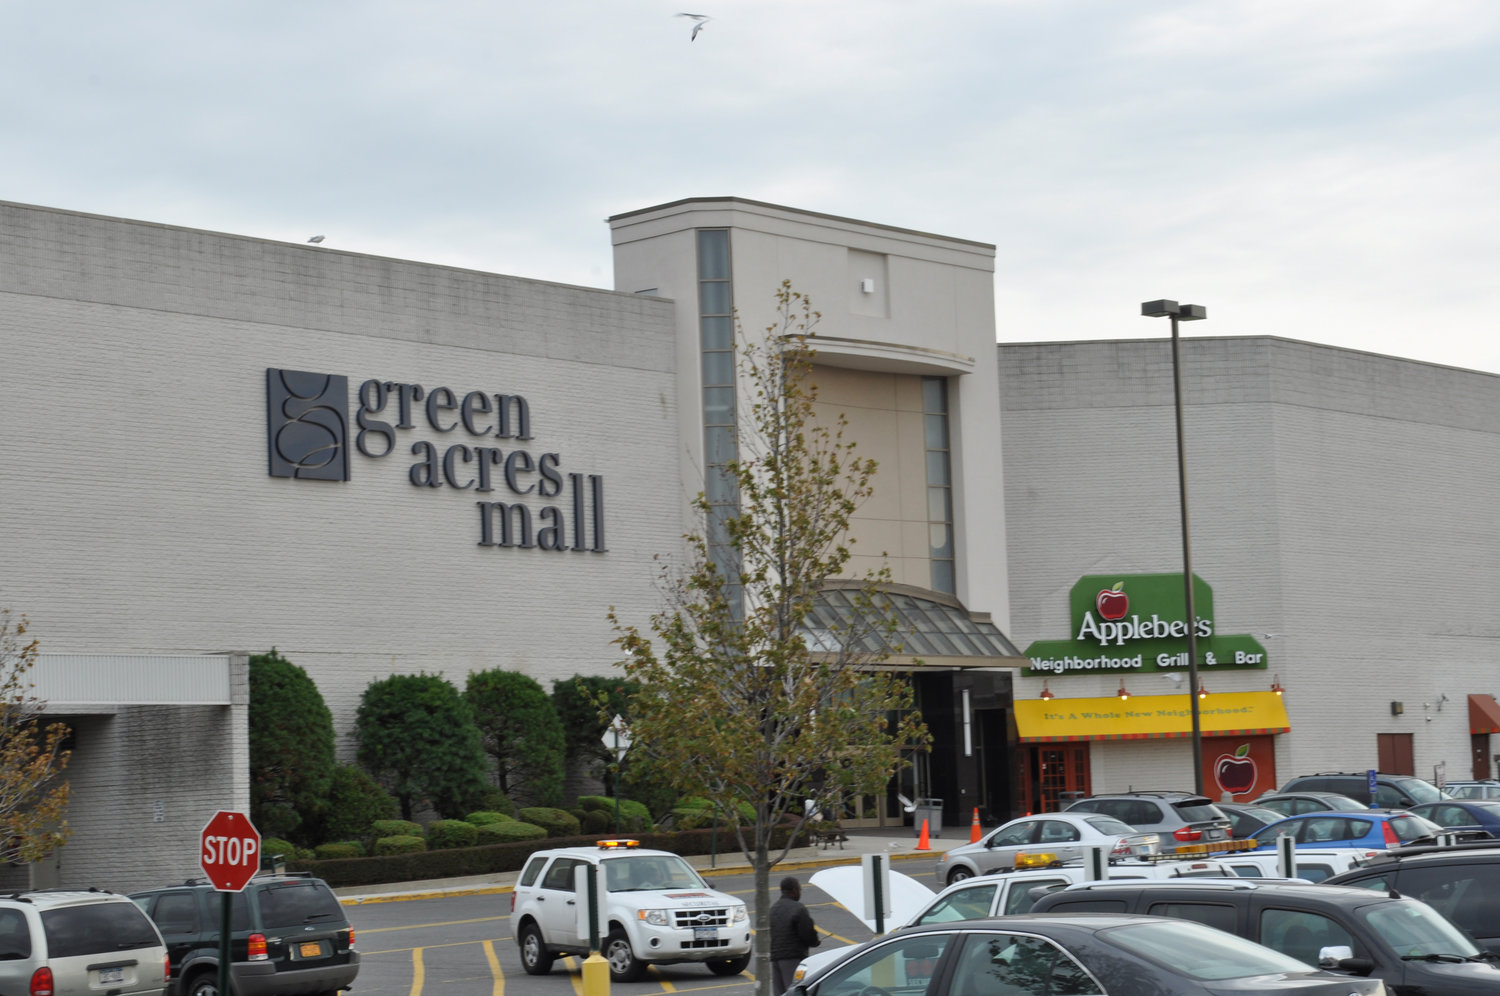 Fifth Precinct police officers reported that a Brooklyn man allegedly tried to steal an elderly woman's car and attacked Green Acres Mall security guards on Sept. 26.